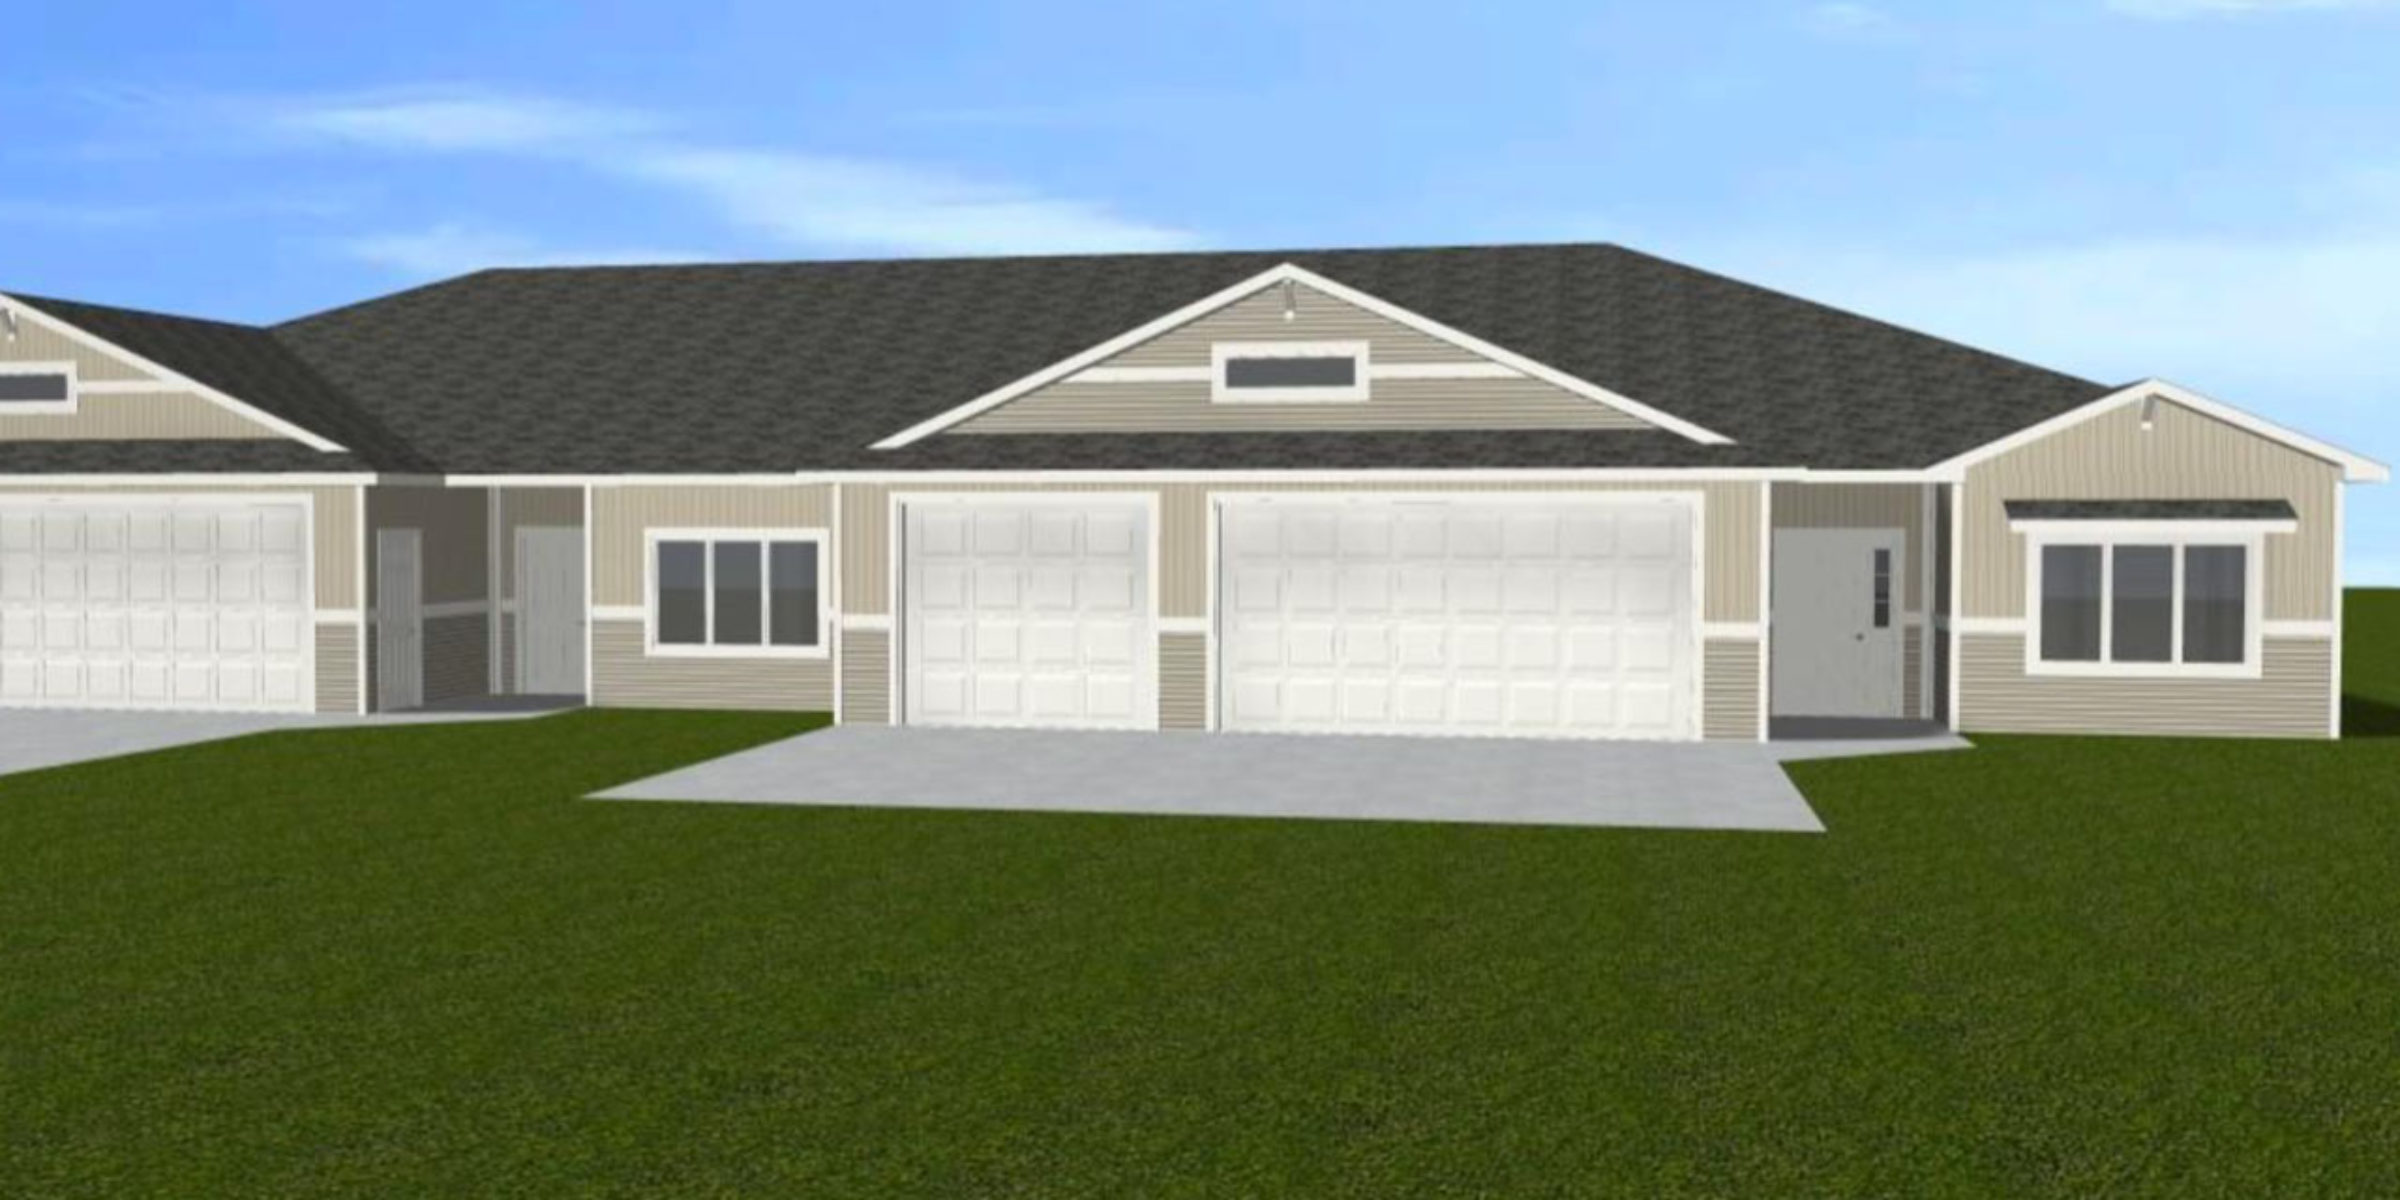 New Independent-Living Community Development in Bismarck